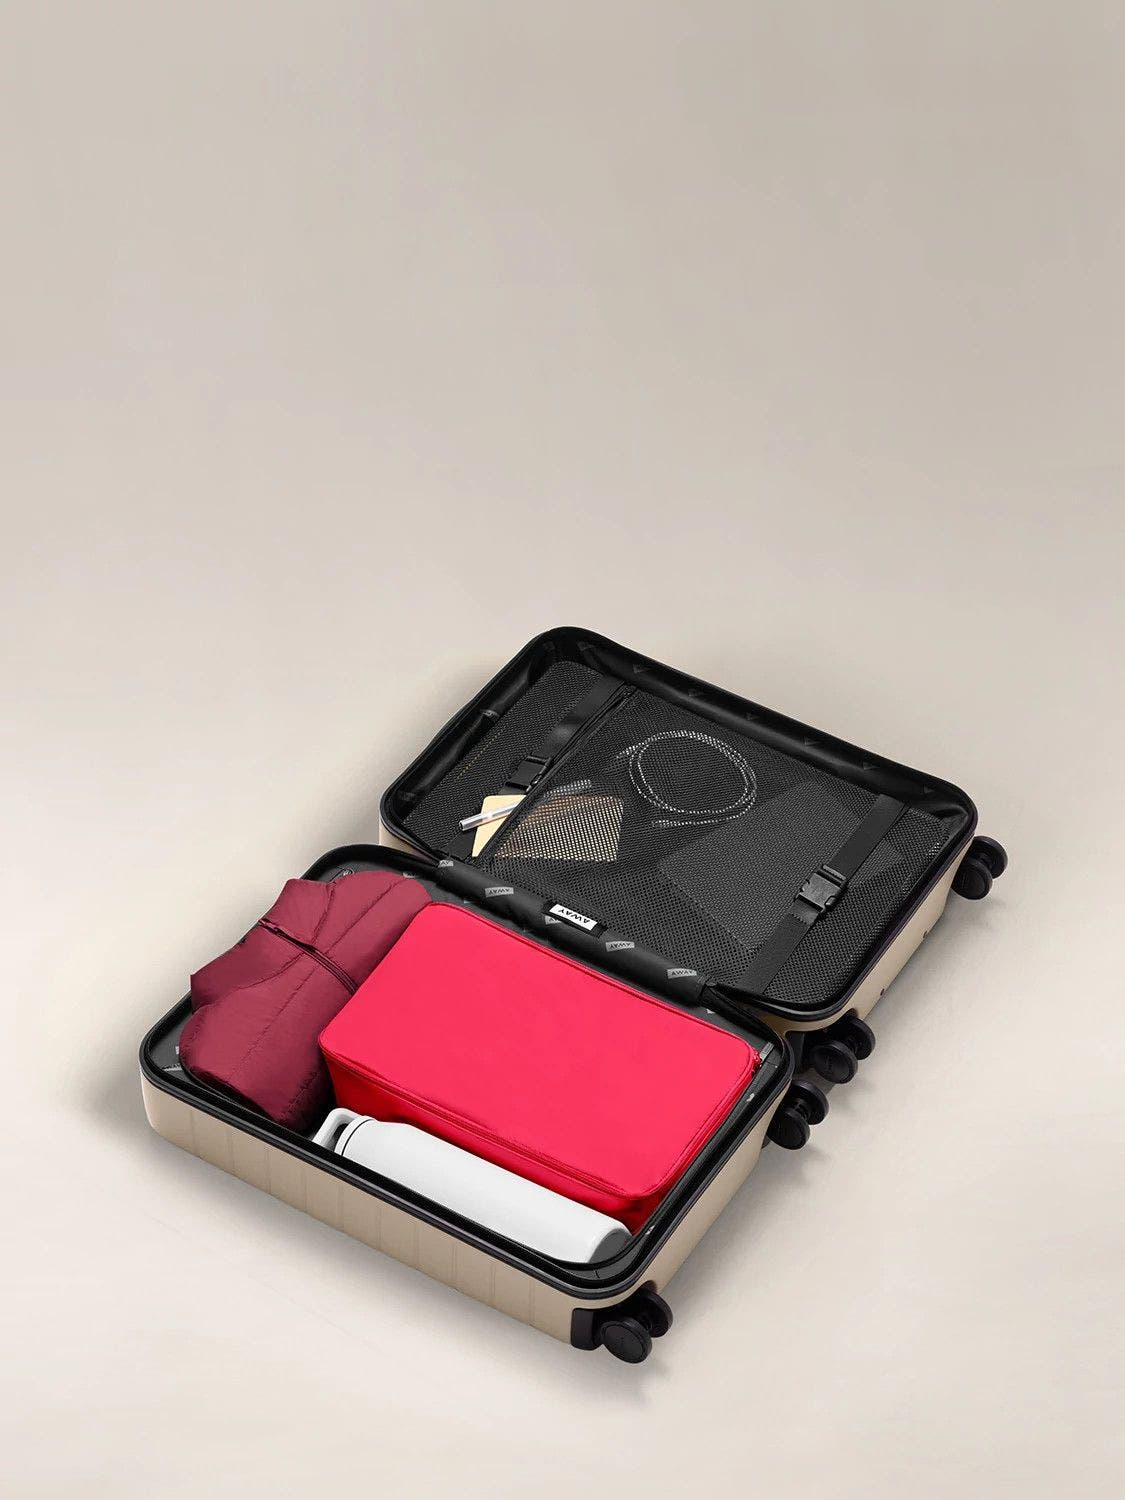 A large shoe cube in electric magenta packed in an open carry-on suitcase.